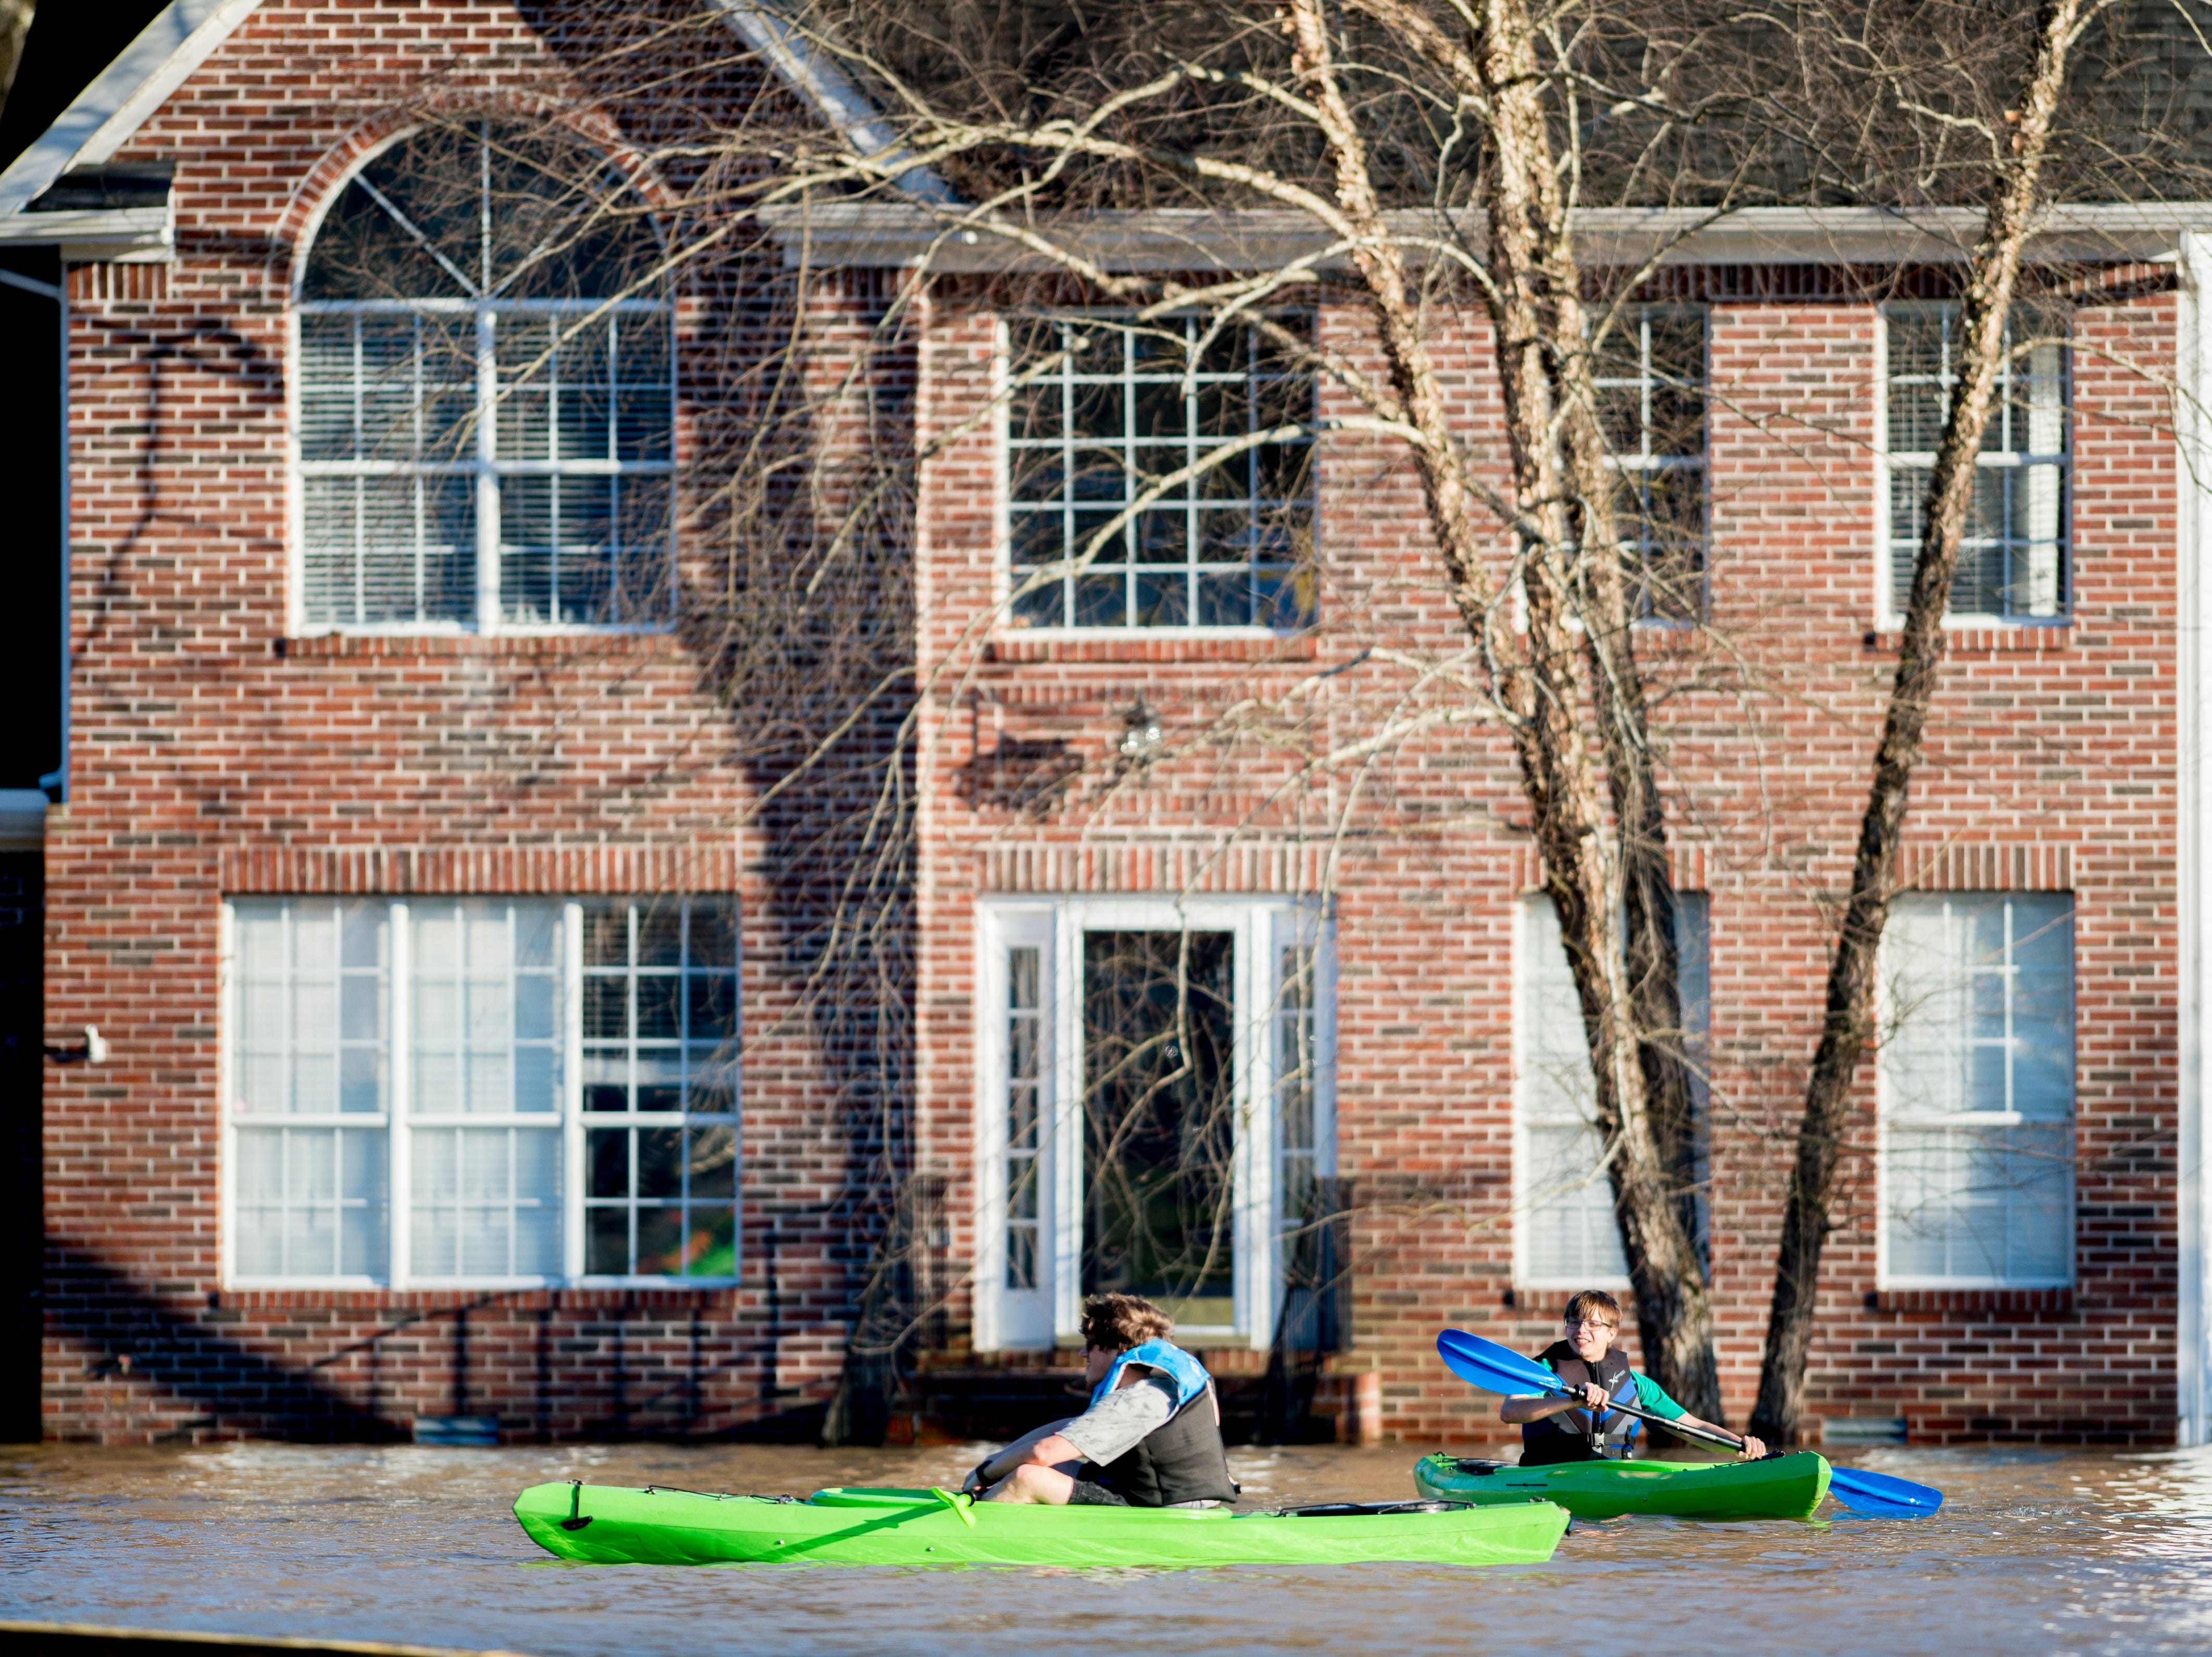 Anthony Forrey and his cousin Jordan Landsman, both from Knoxville, paddle in front of a flooded home near the Sunoco on Ebenezer Road and Gleason Drive in Knoxville, Tennessee on Sunday, February 24, 2019.